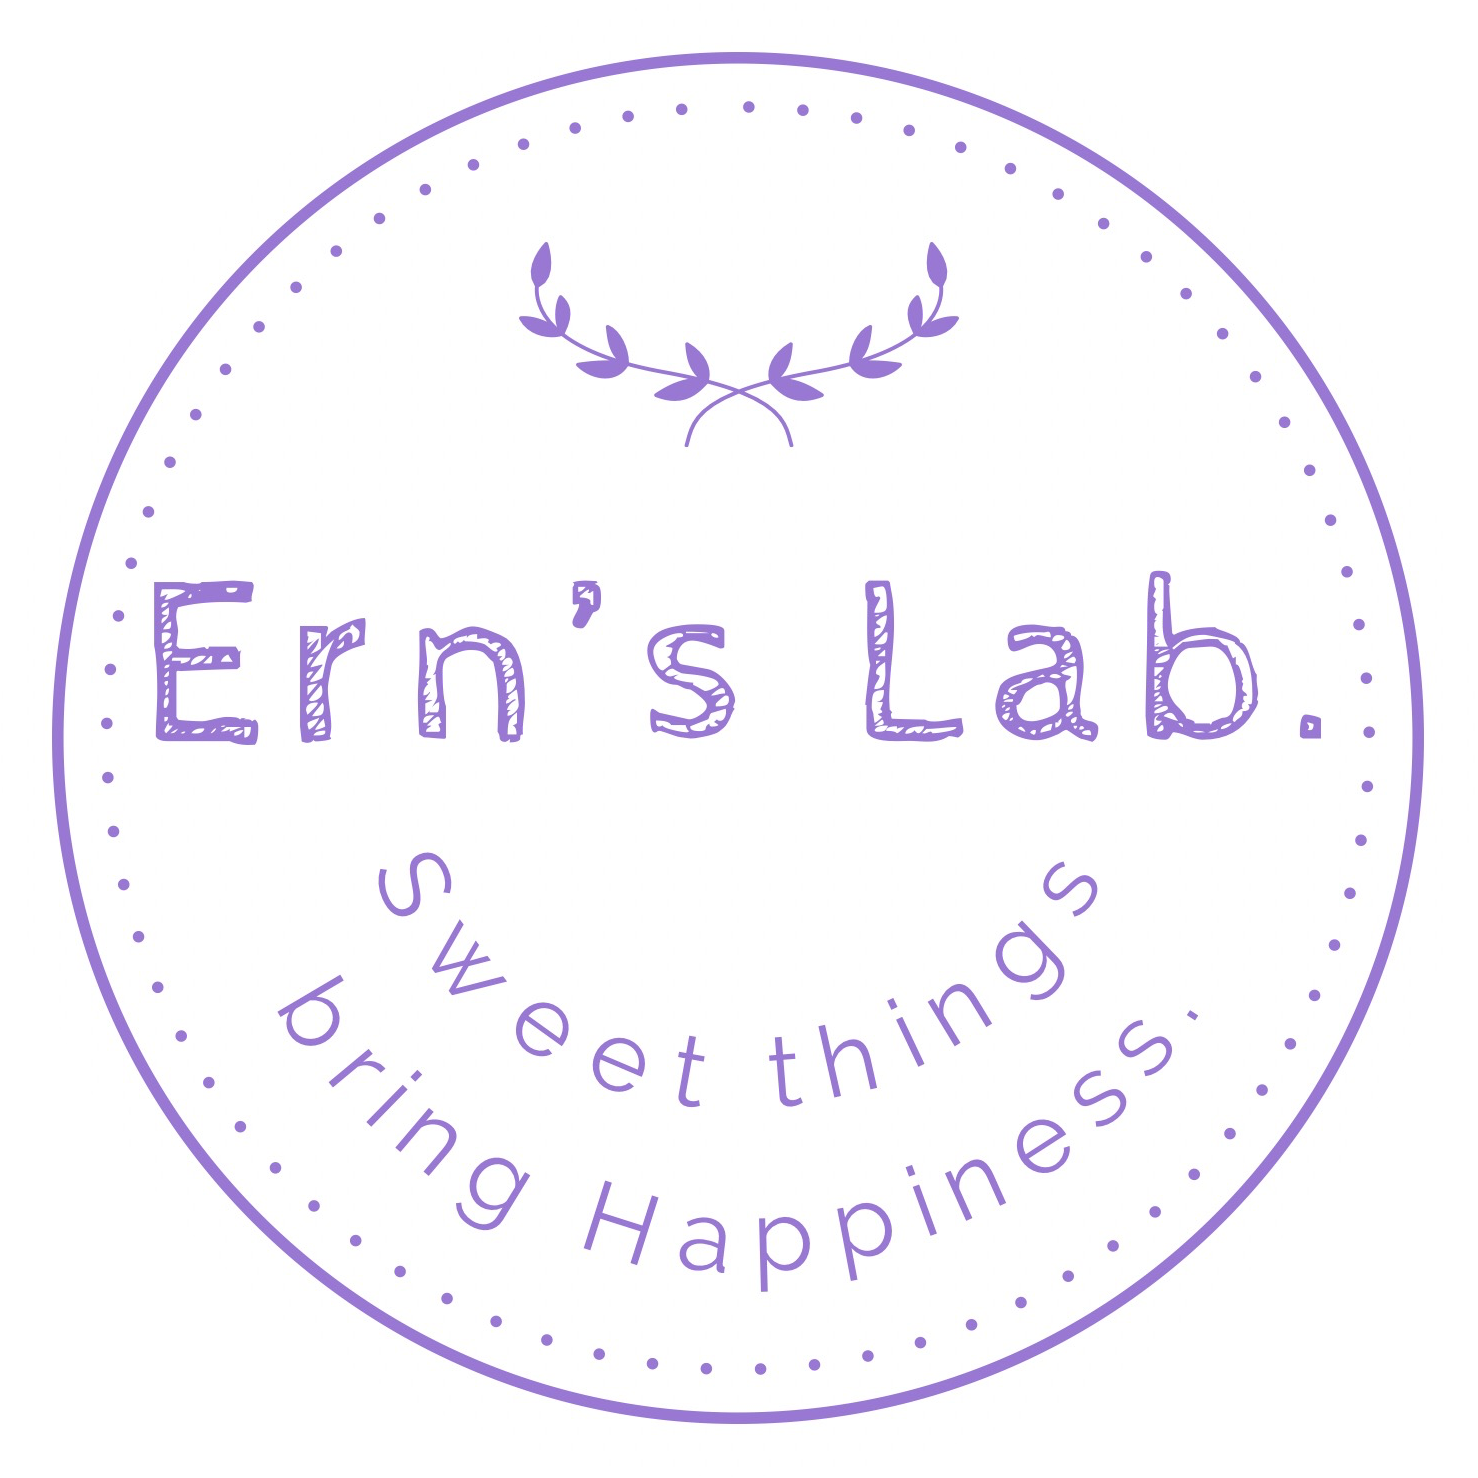 Ern's lab. ~Bake shop~